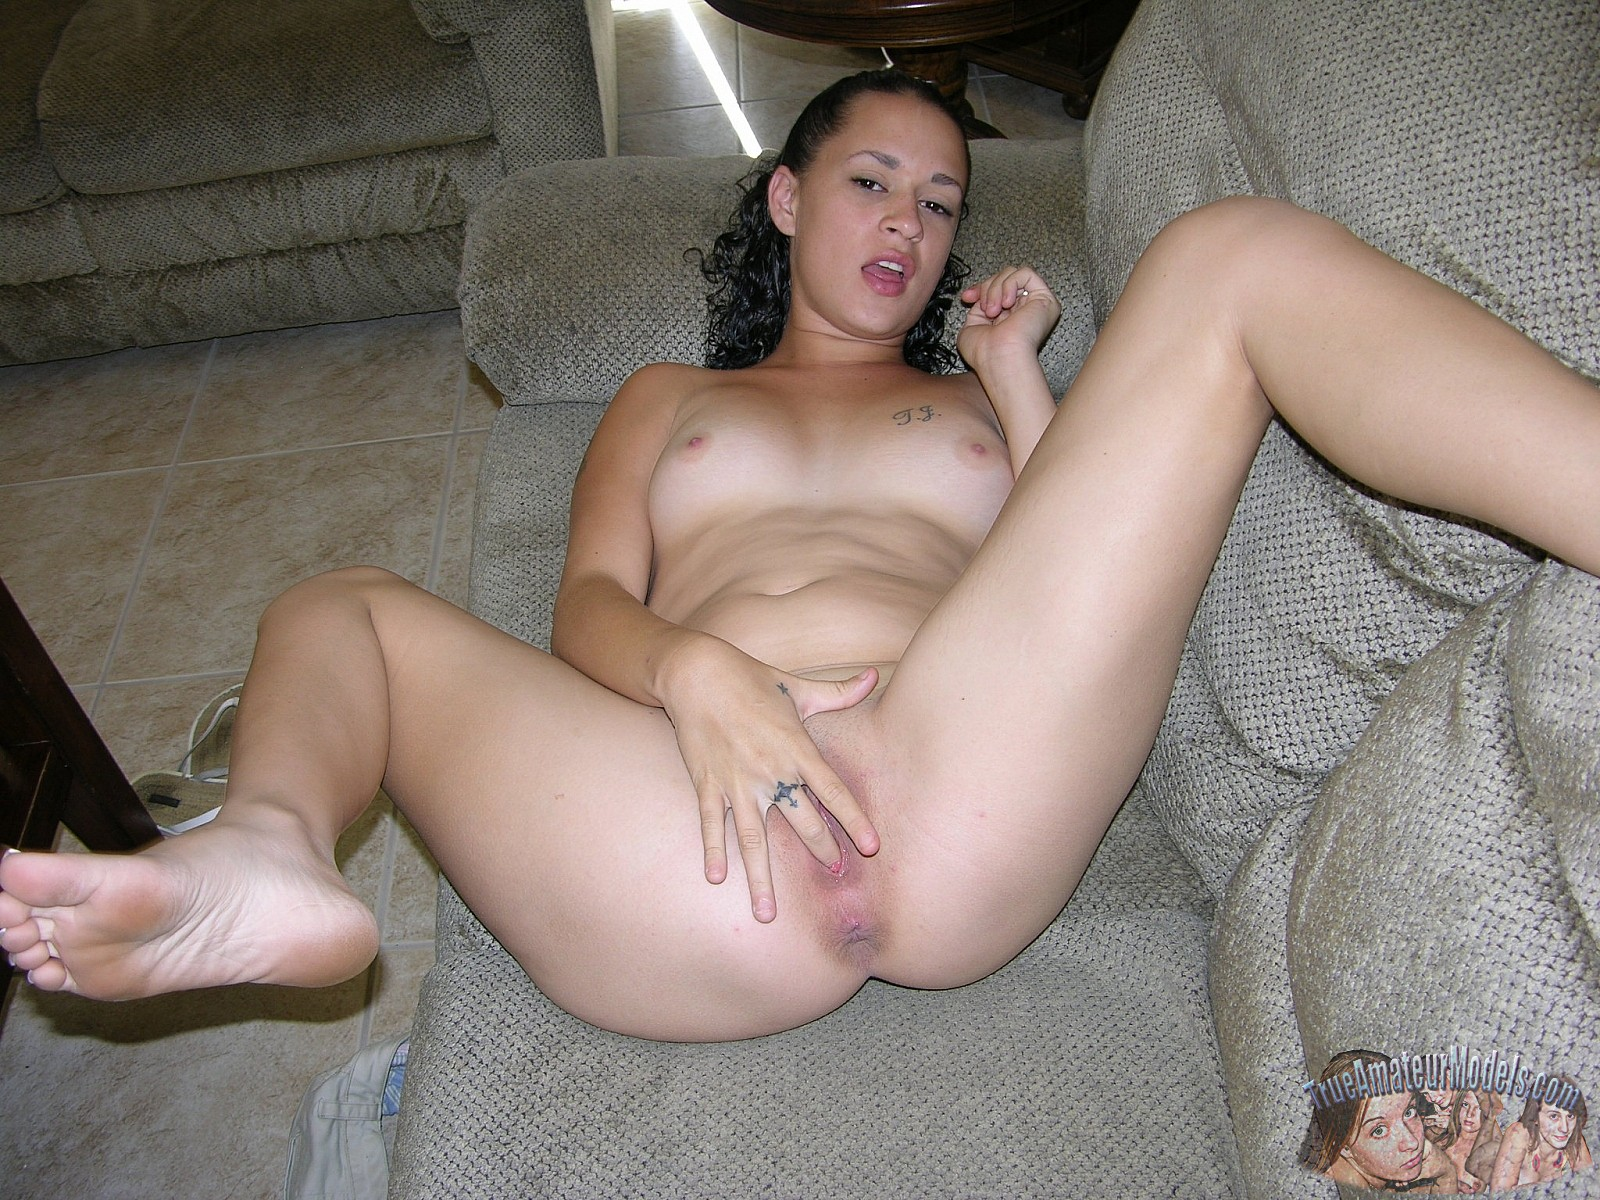 Site model sexy amateur really. All